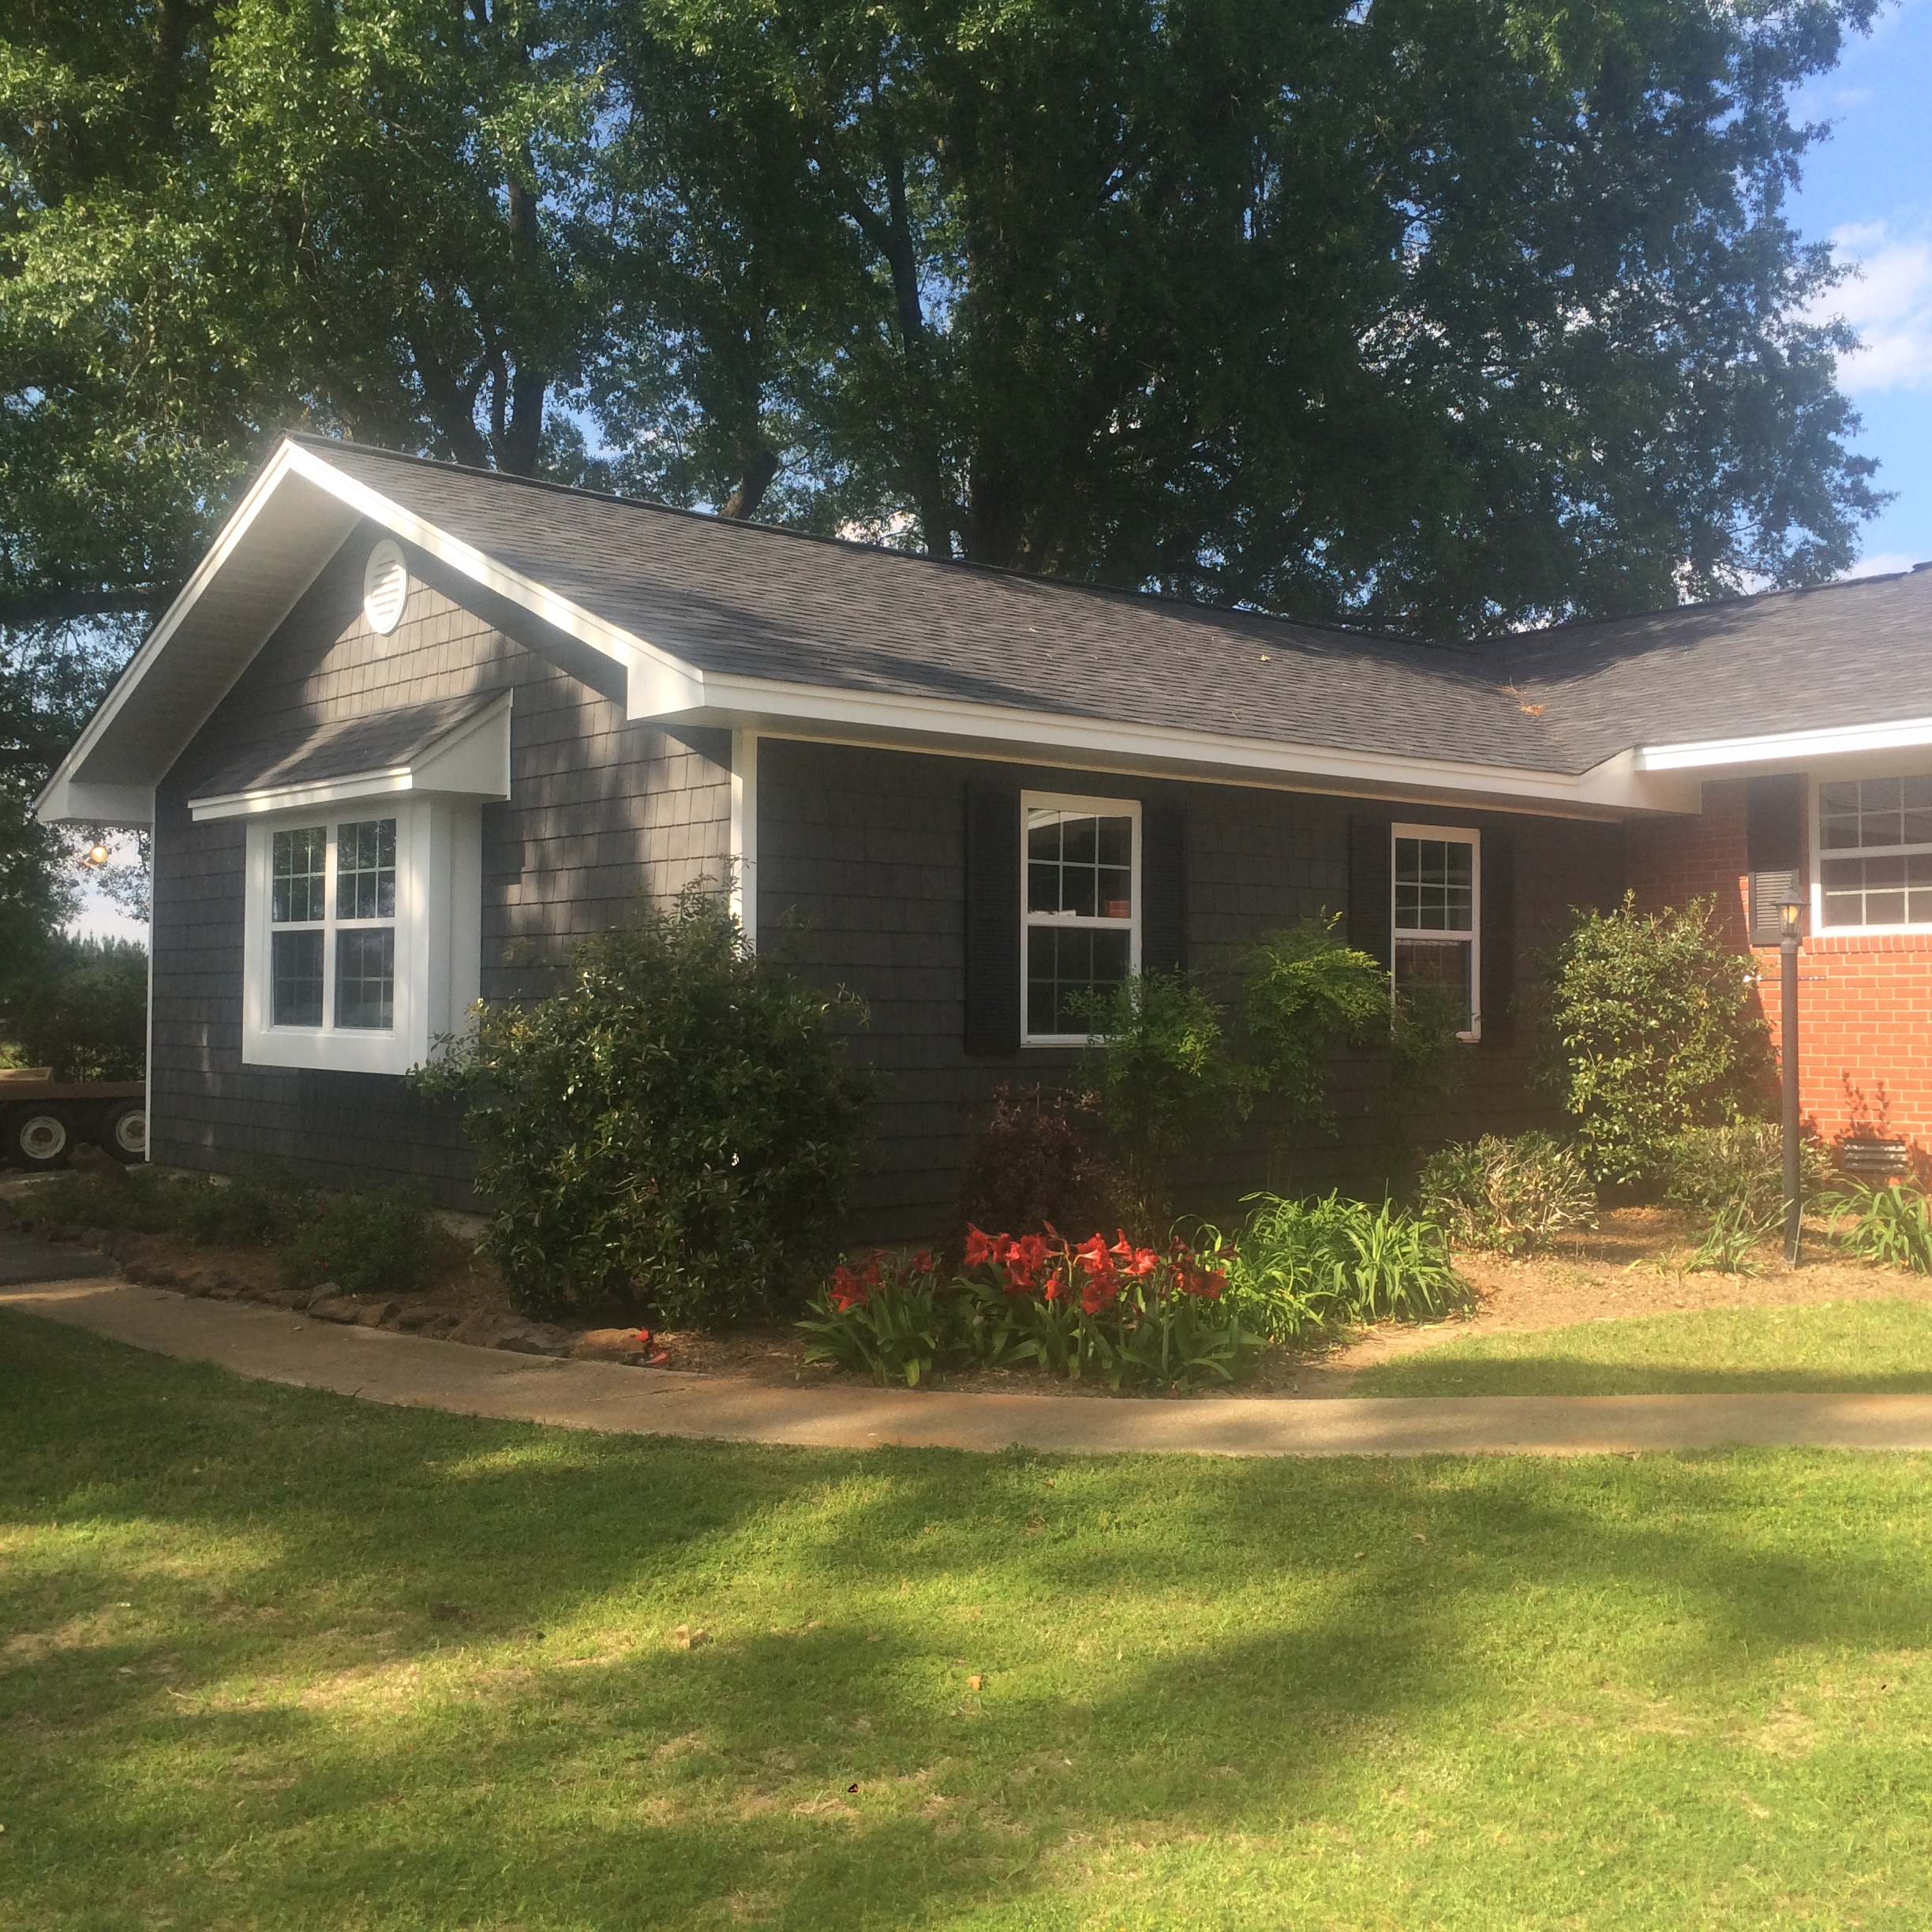 Novik Shakes with Alside White trim and Black shutters in Noxapater, MS.